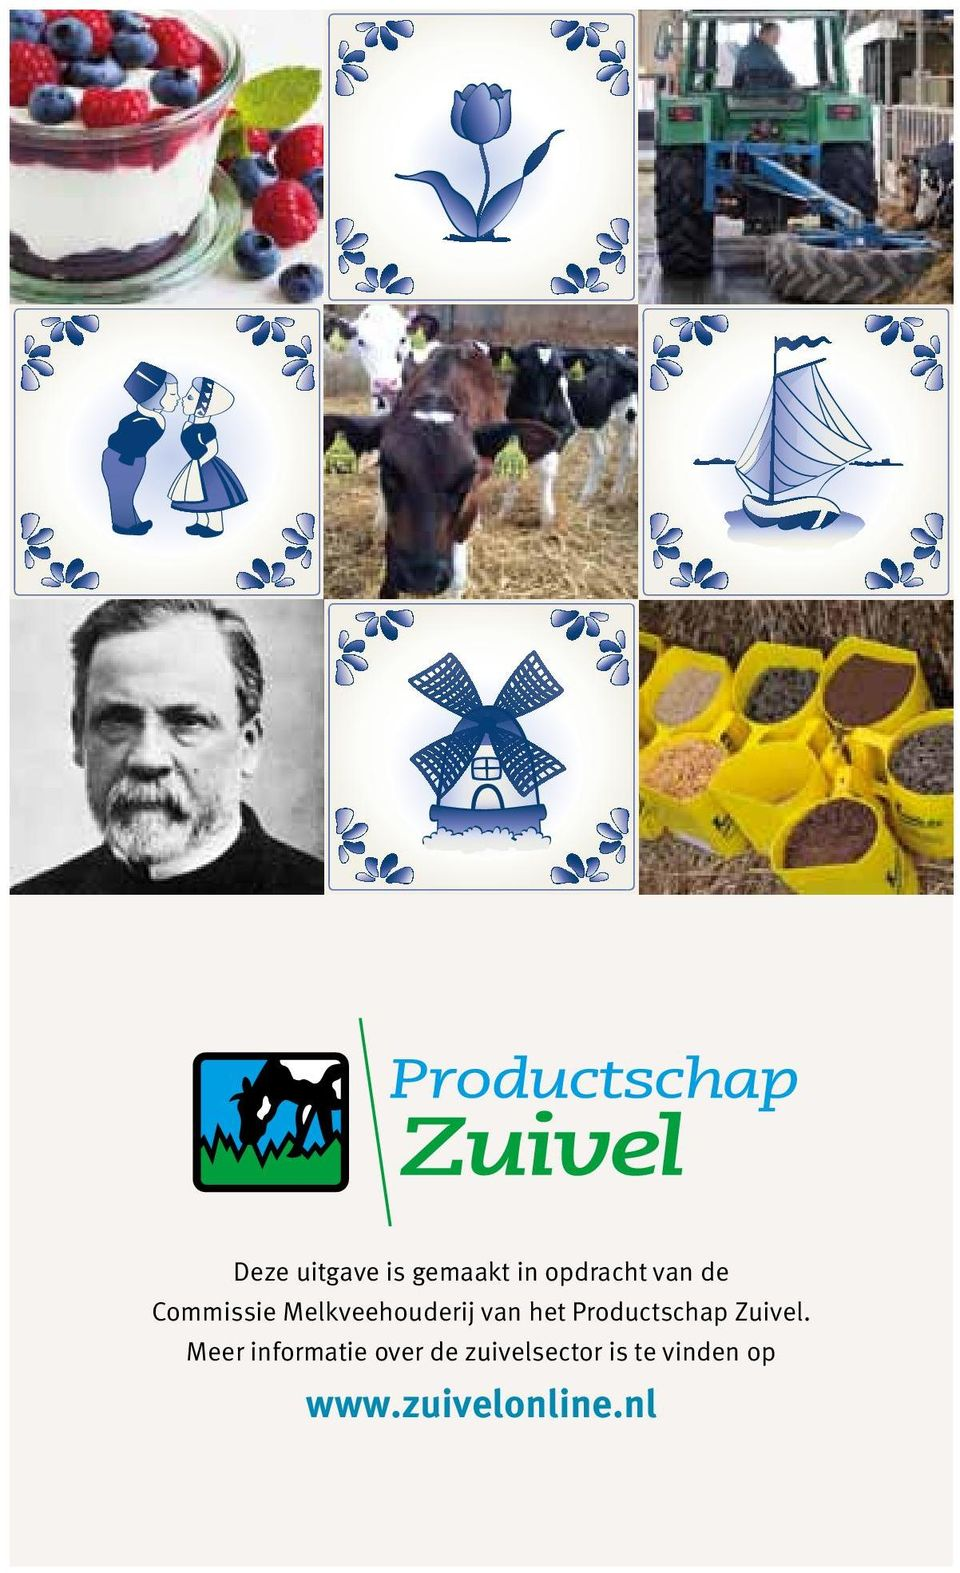 Productschap Zuivel.